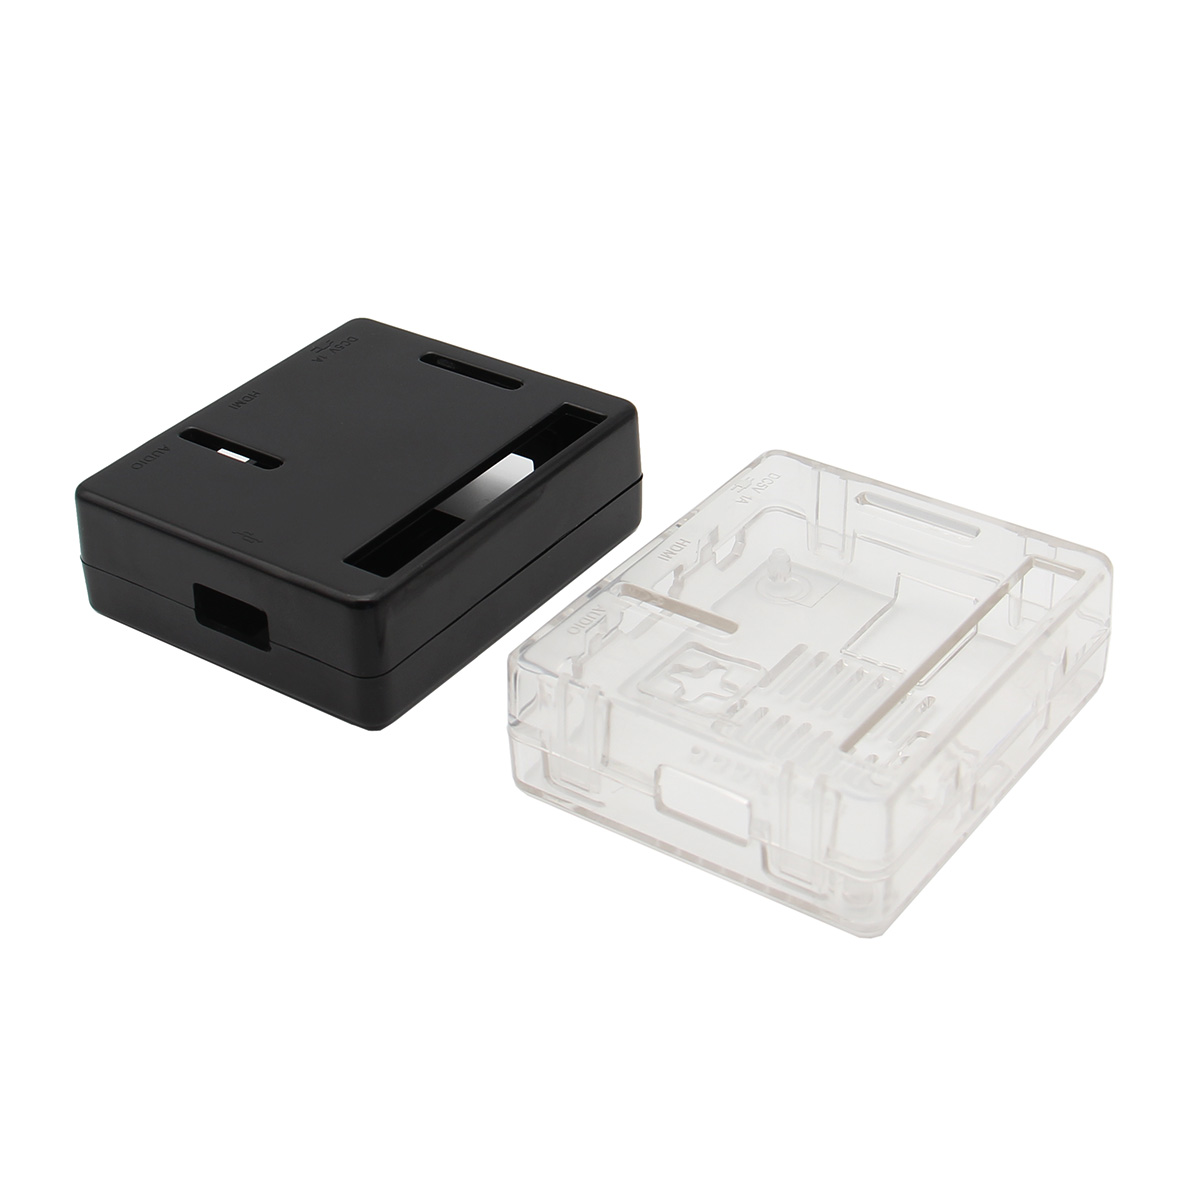 Black/Transparent Color ABS Case for Raspberry Pi Model 3 A+(Plus) Mainboard